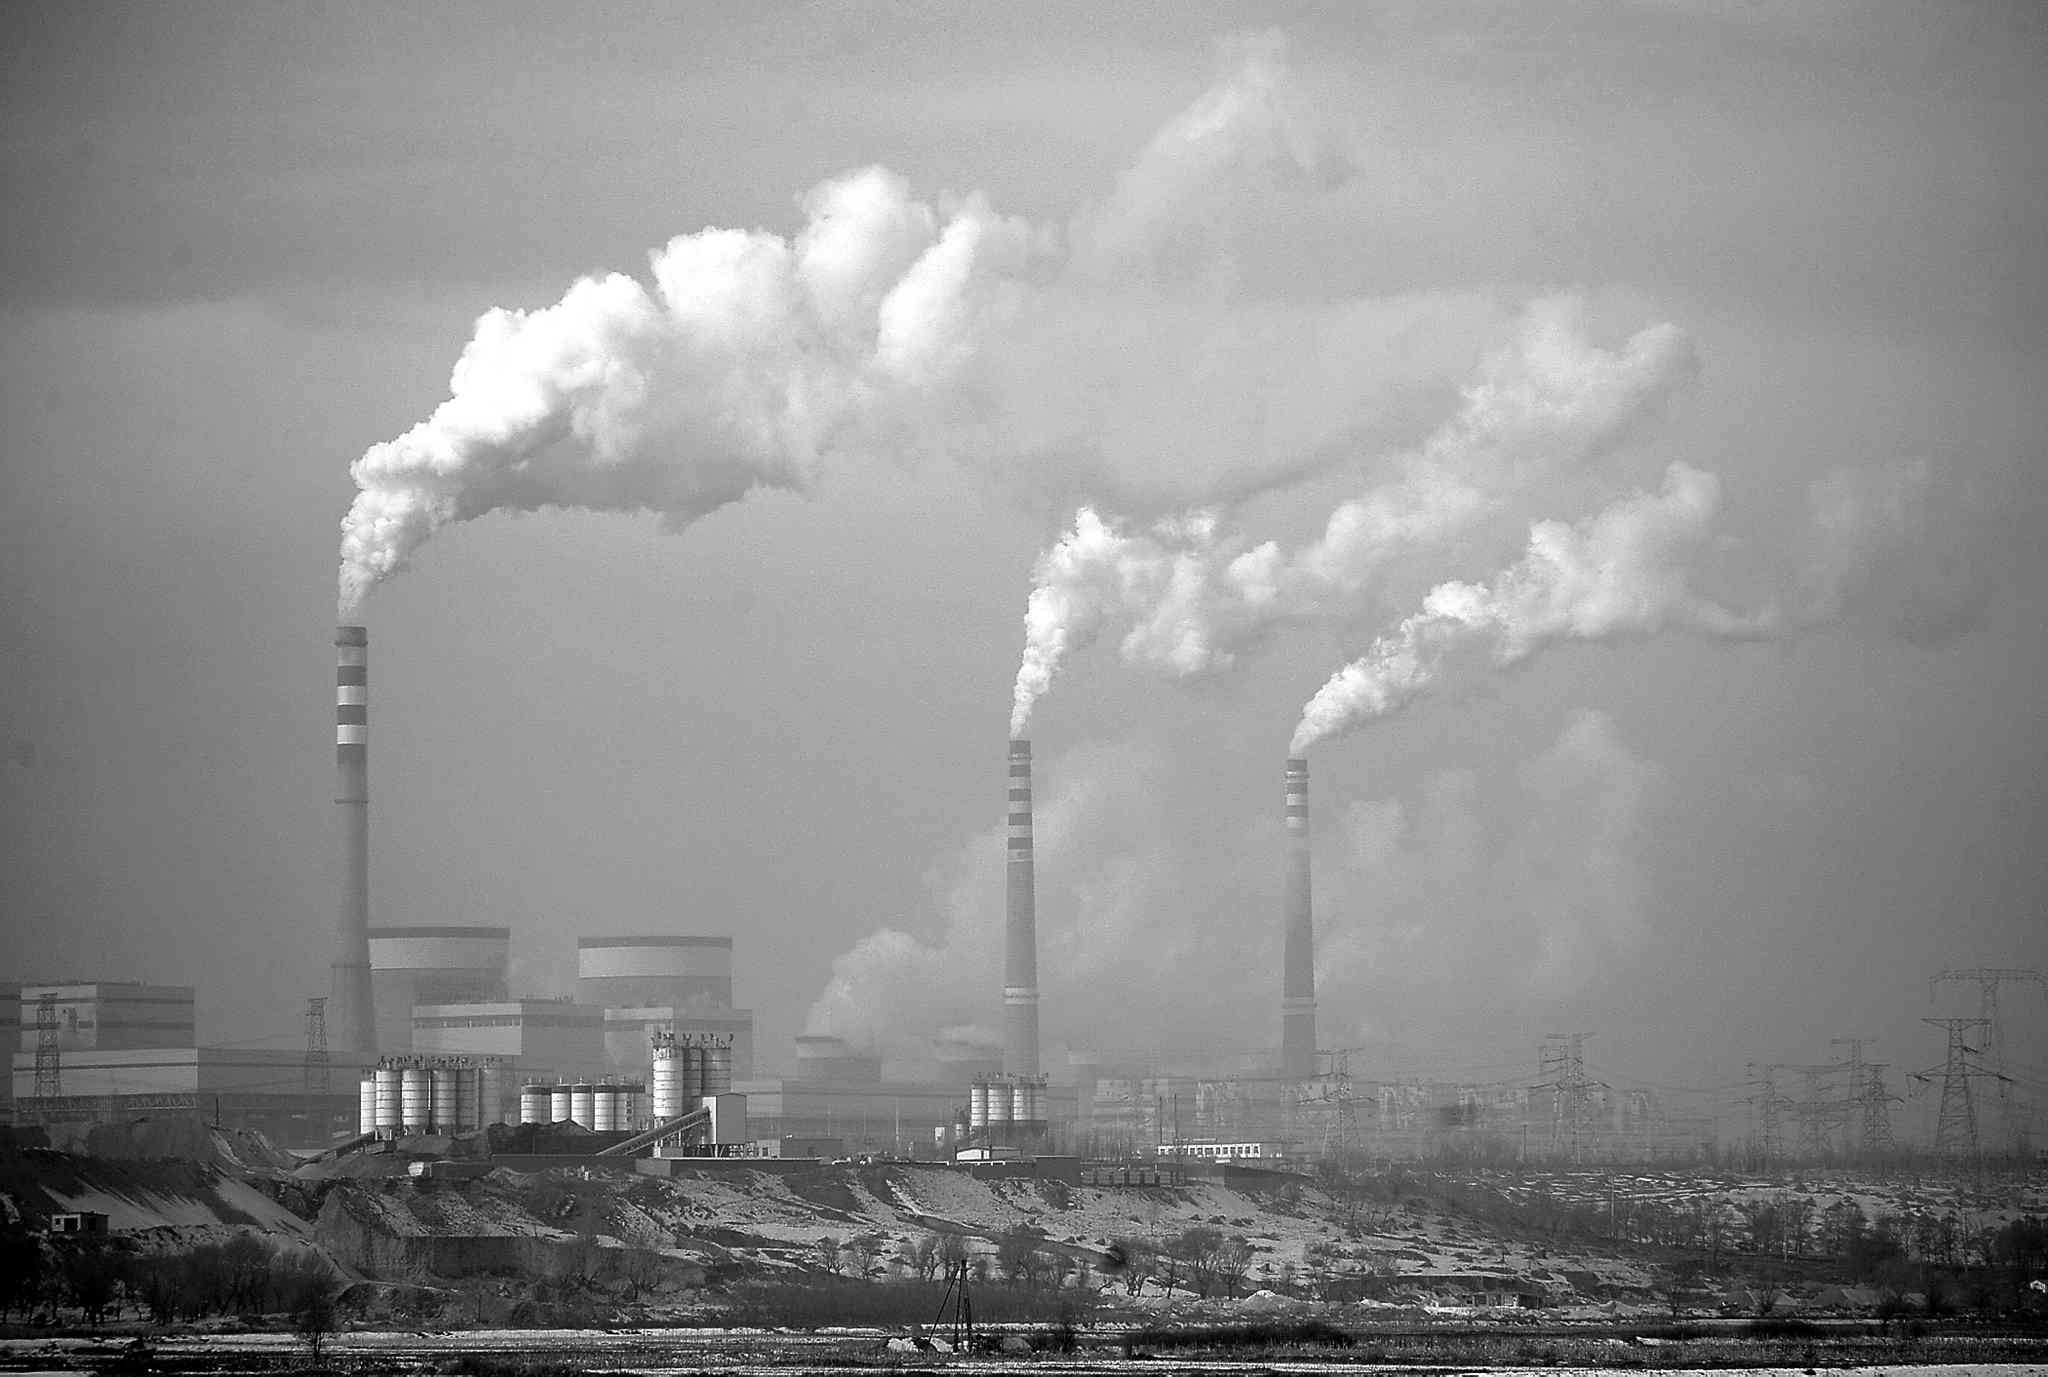 Carbon dioxide-producing smoke billows from chimneys of a coal-fired power plant in Dadong, China, in 2009.